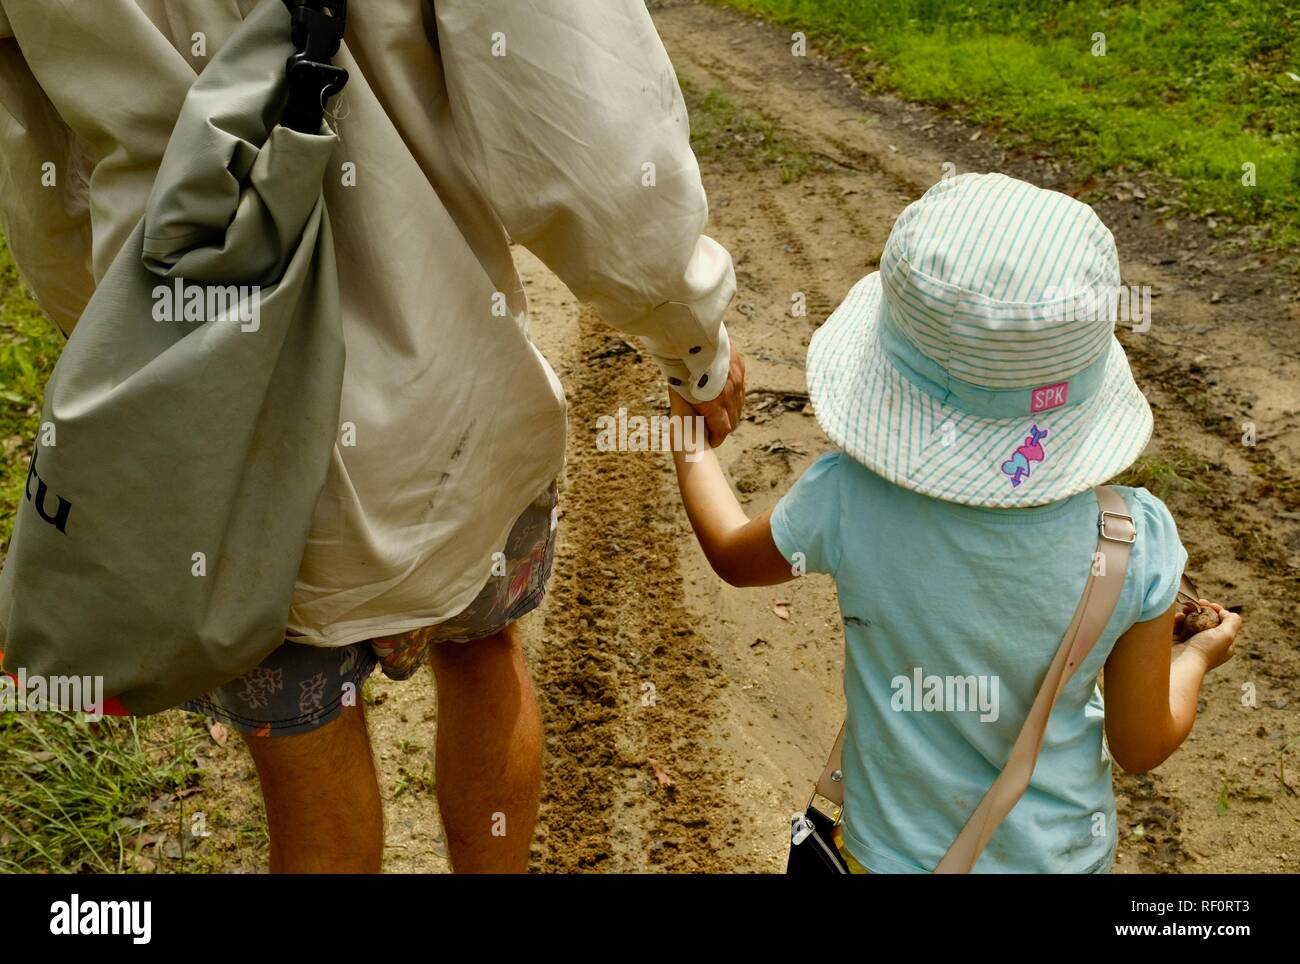 Father and daughter holding hands while walking outdoors in a forest, Mia Mia State Forest, Queensland, Australia - Stock Image